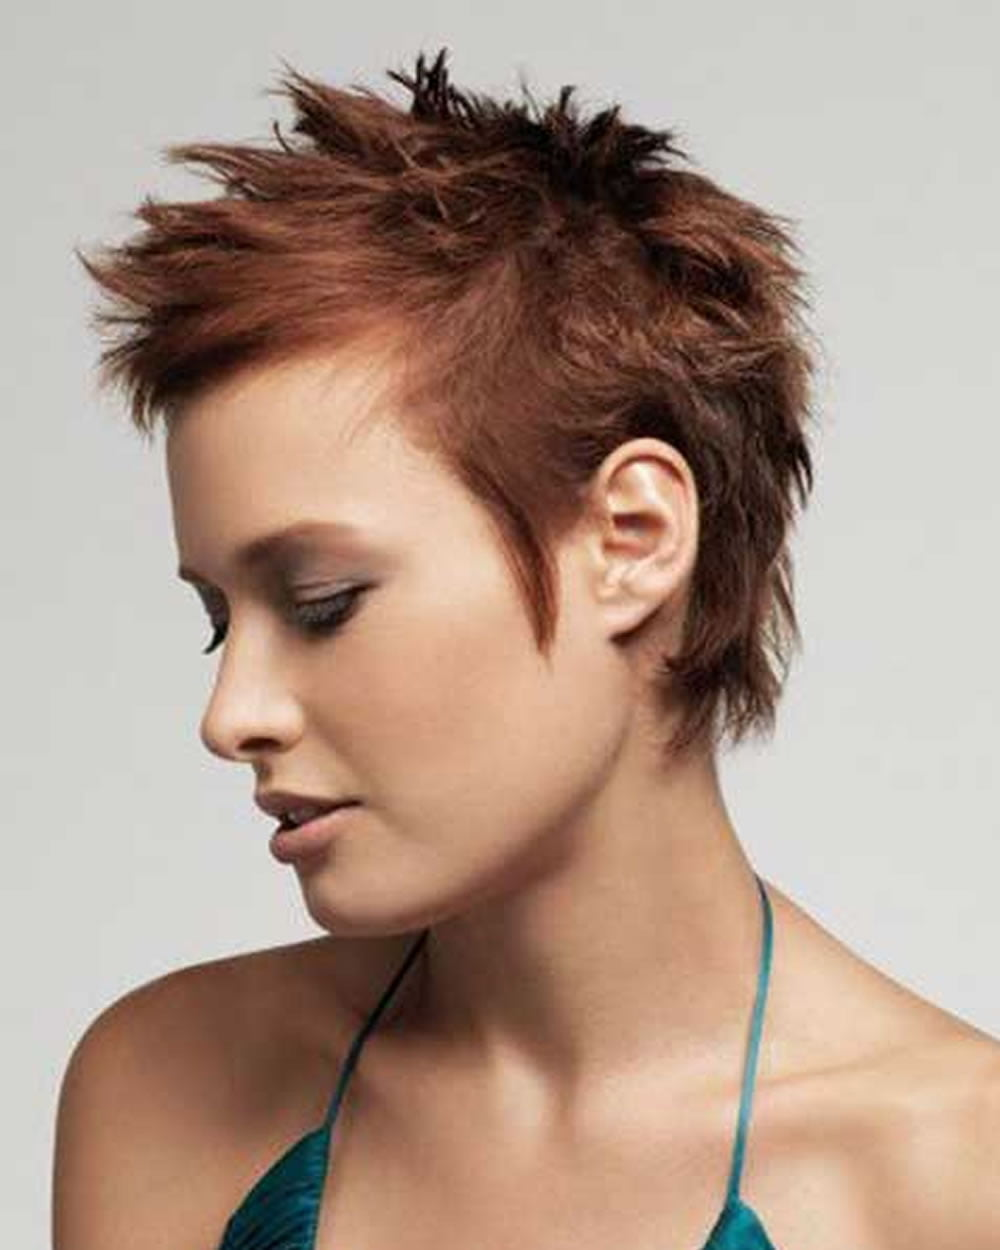 Short Spiky Haircuts Amp Hairstyles For Women 2018 Page 5